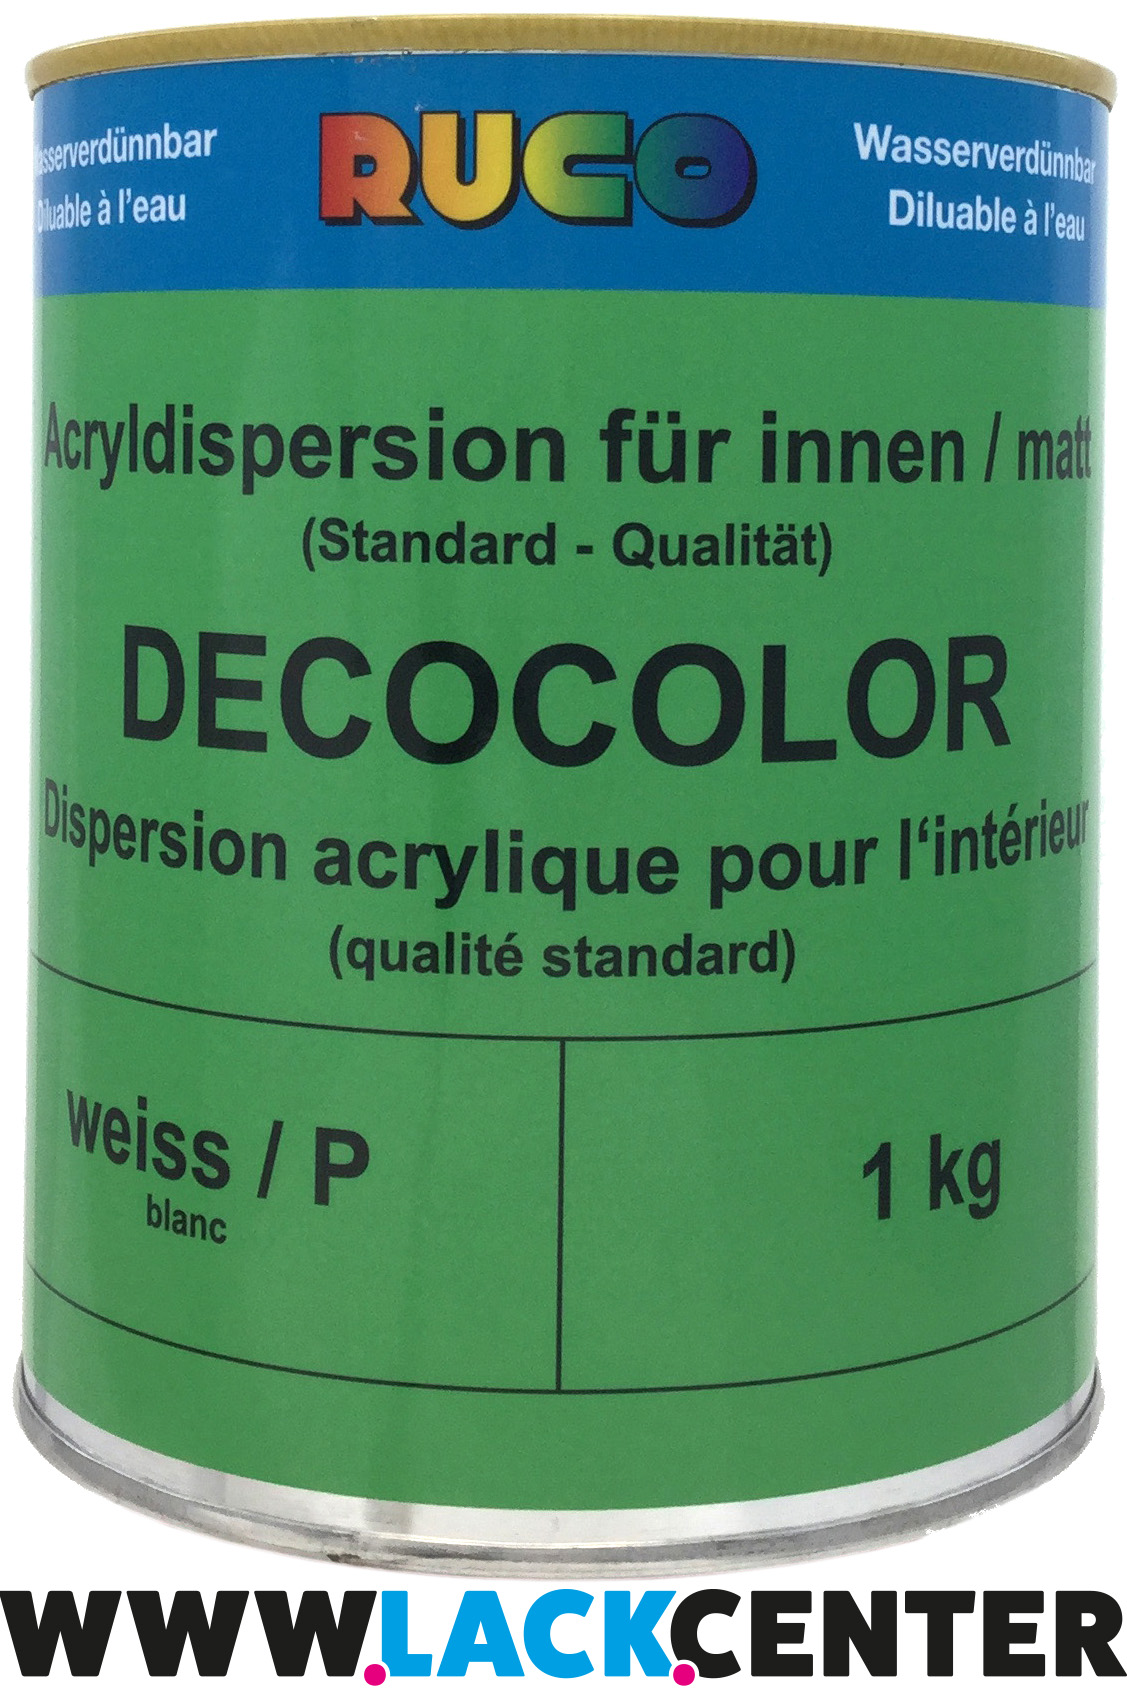 Decocolor_weiss_01_www.lack.center.jpg